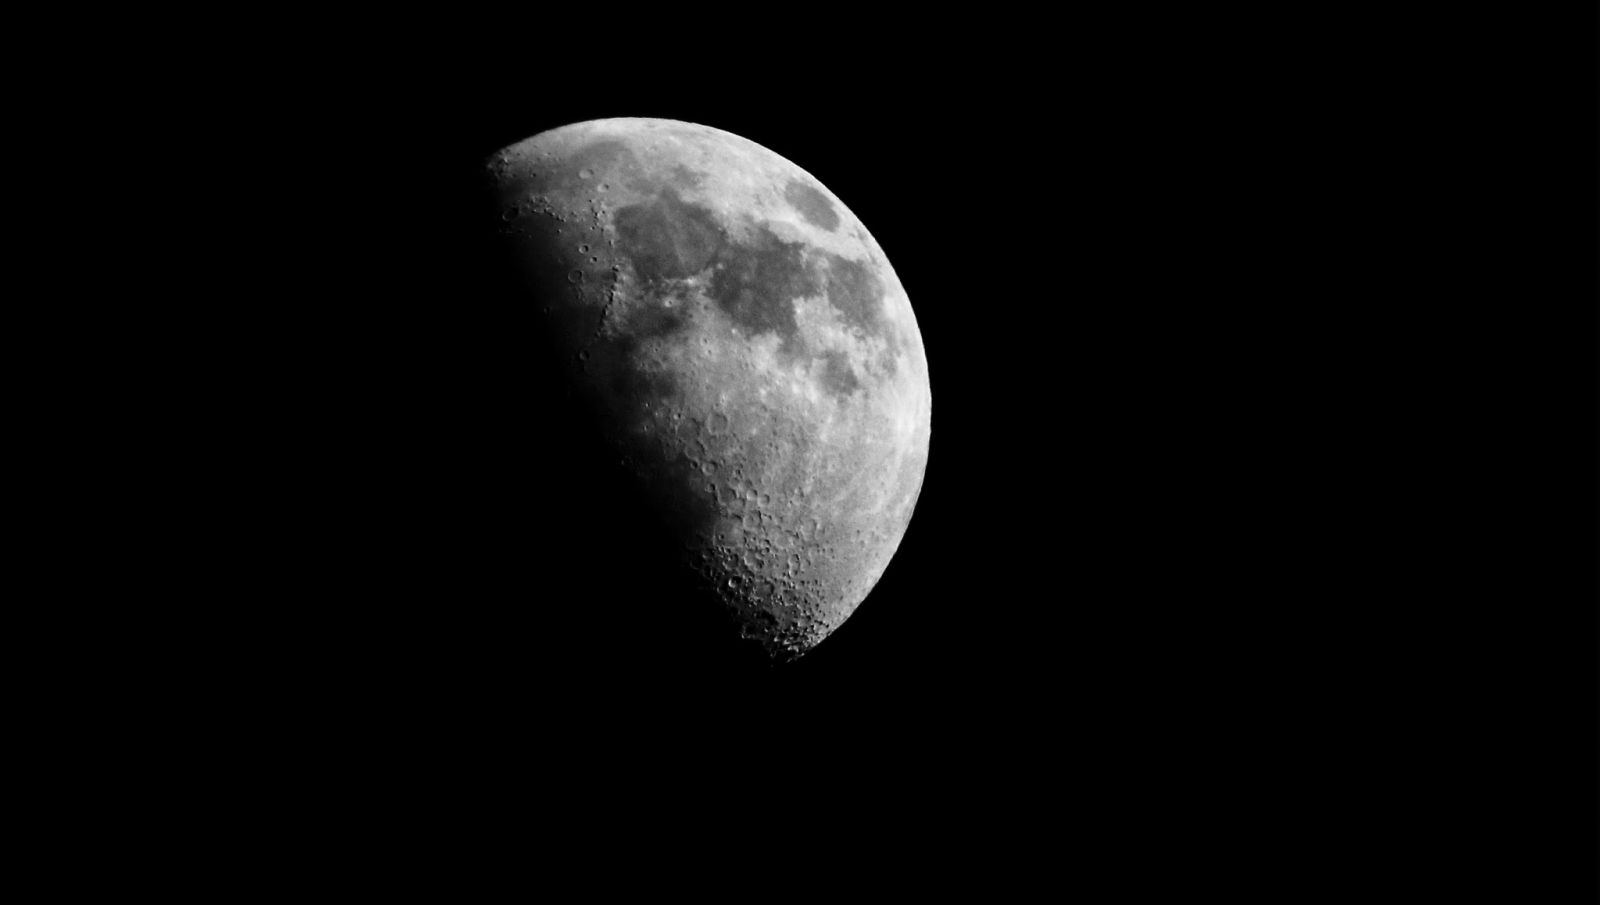 Moon images August 4th 2014